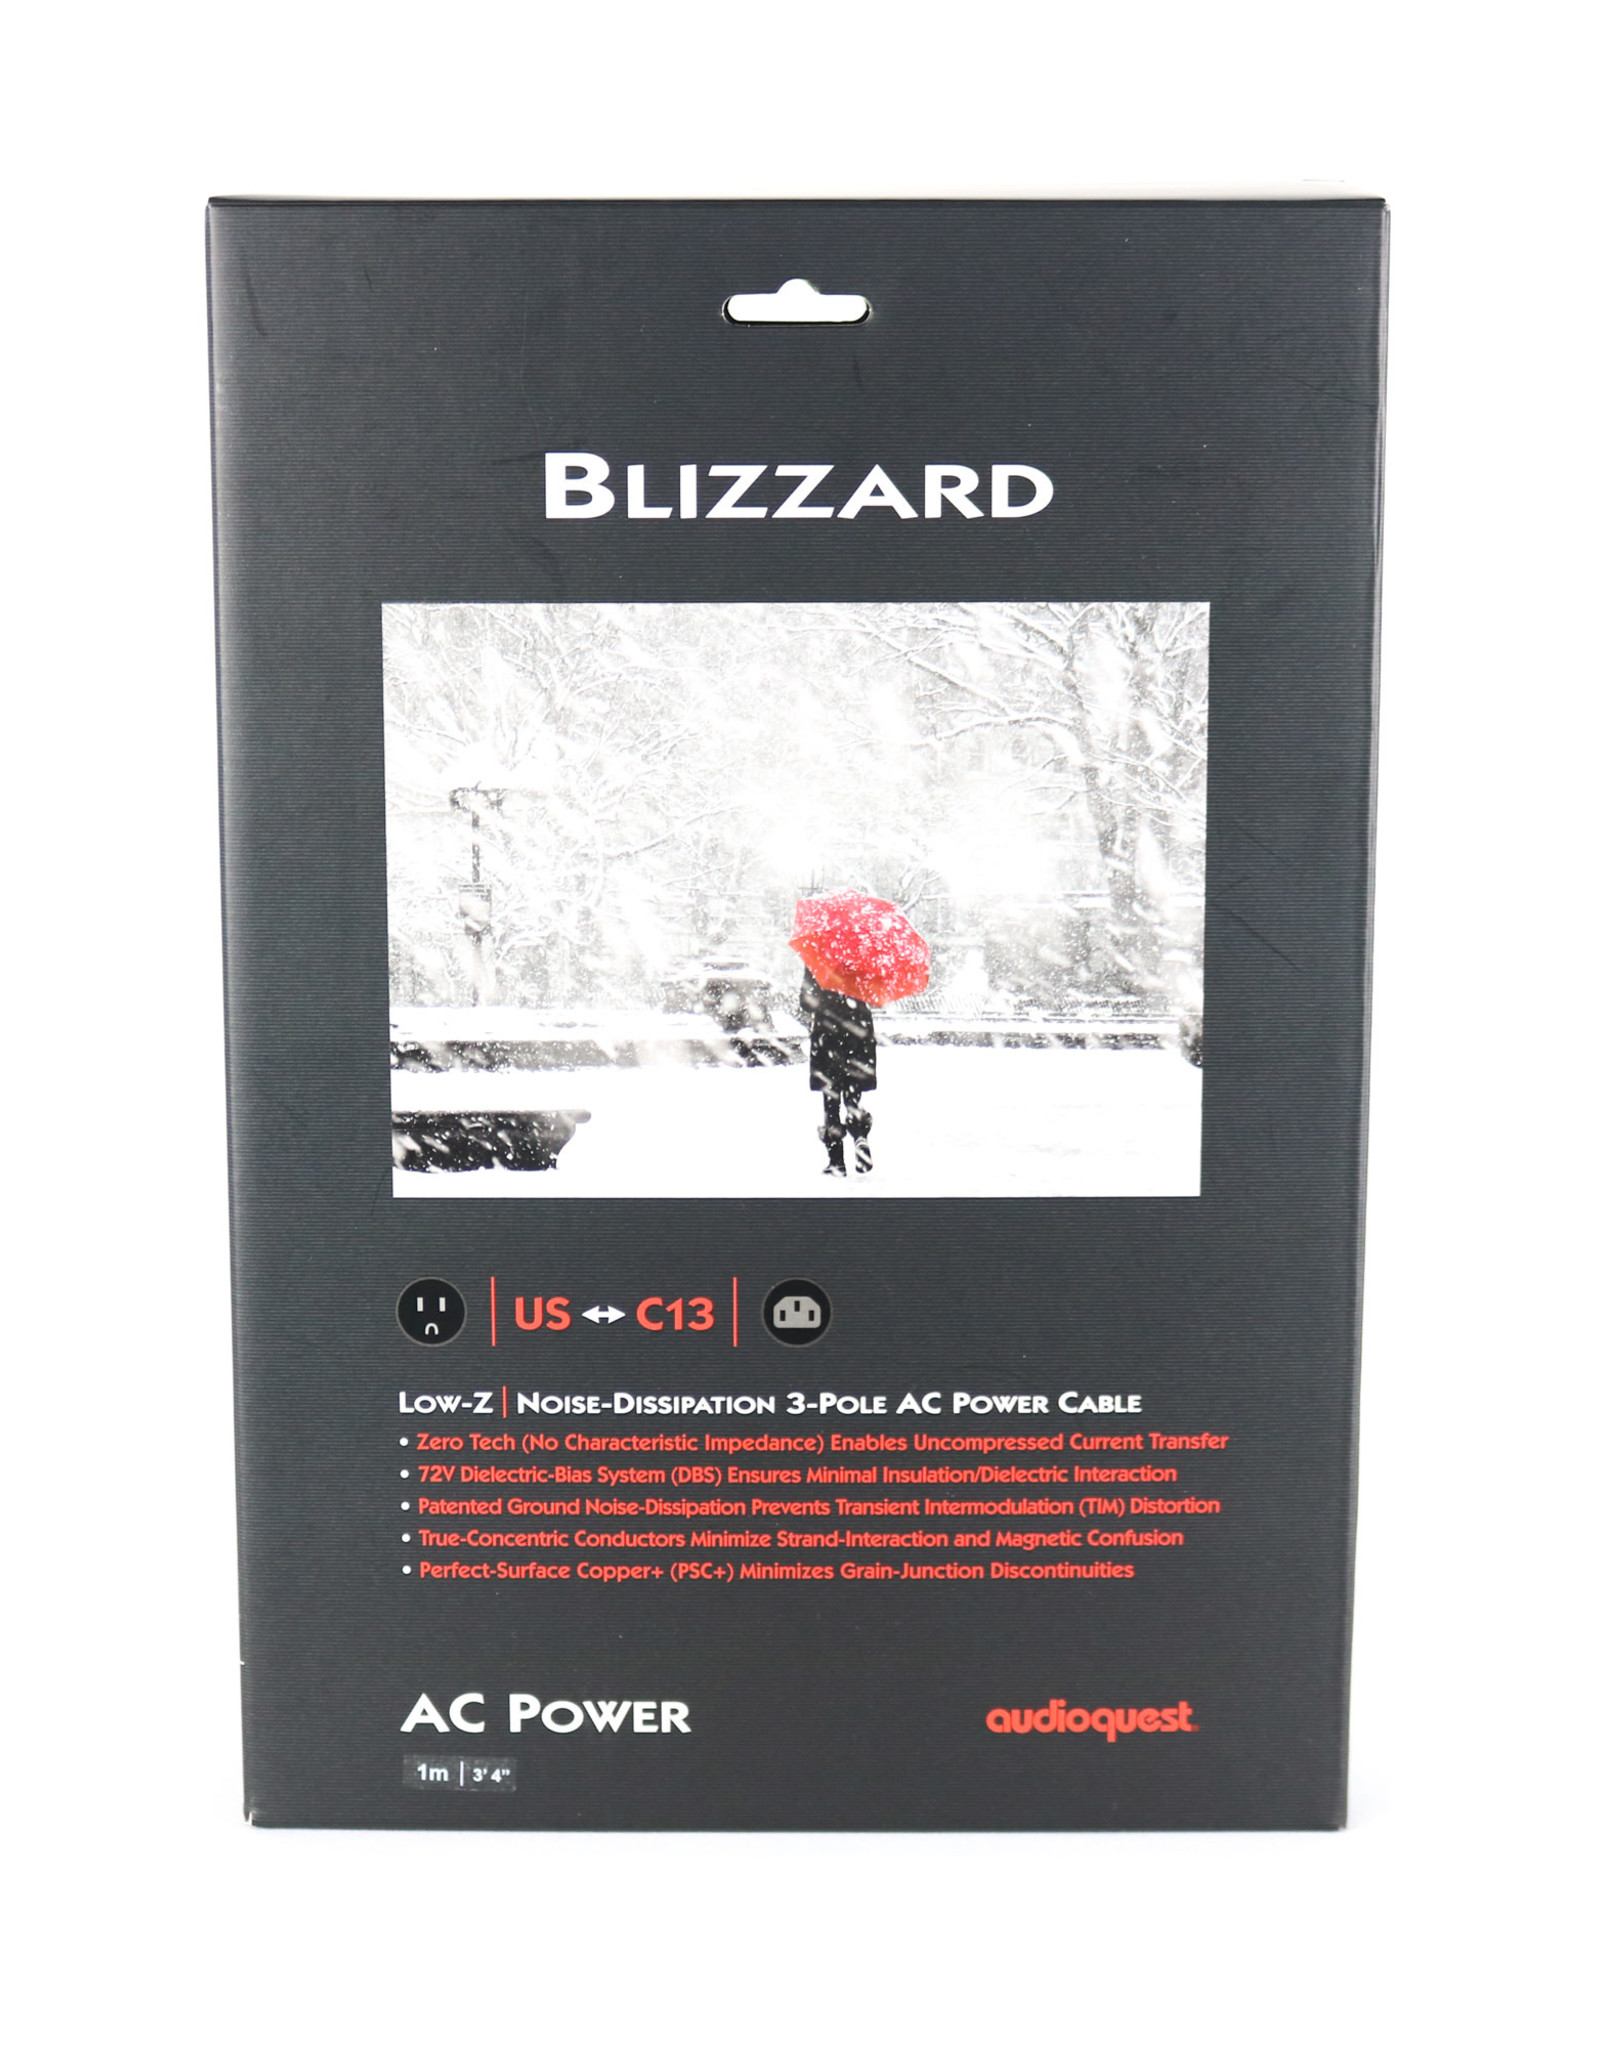 AudioQuest AudioQuest Blizzard 1m AC Power Cable USED